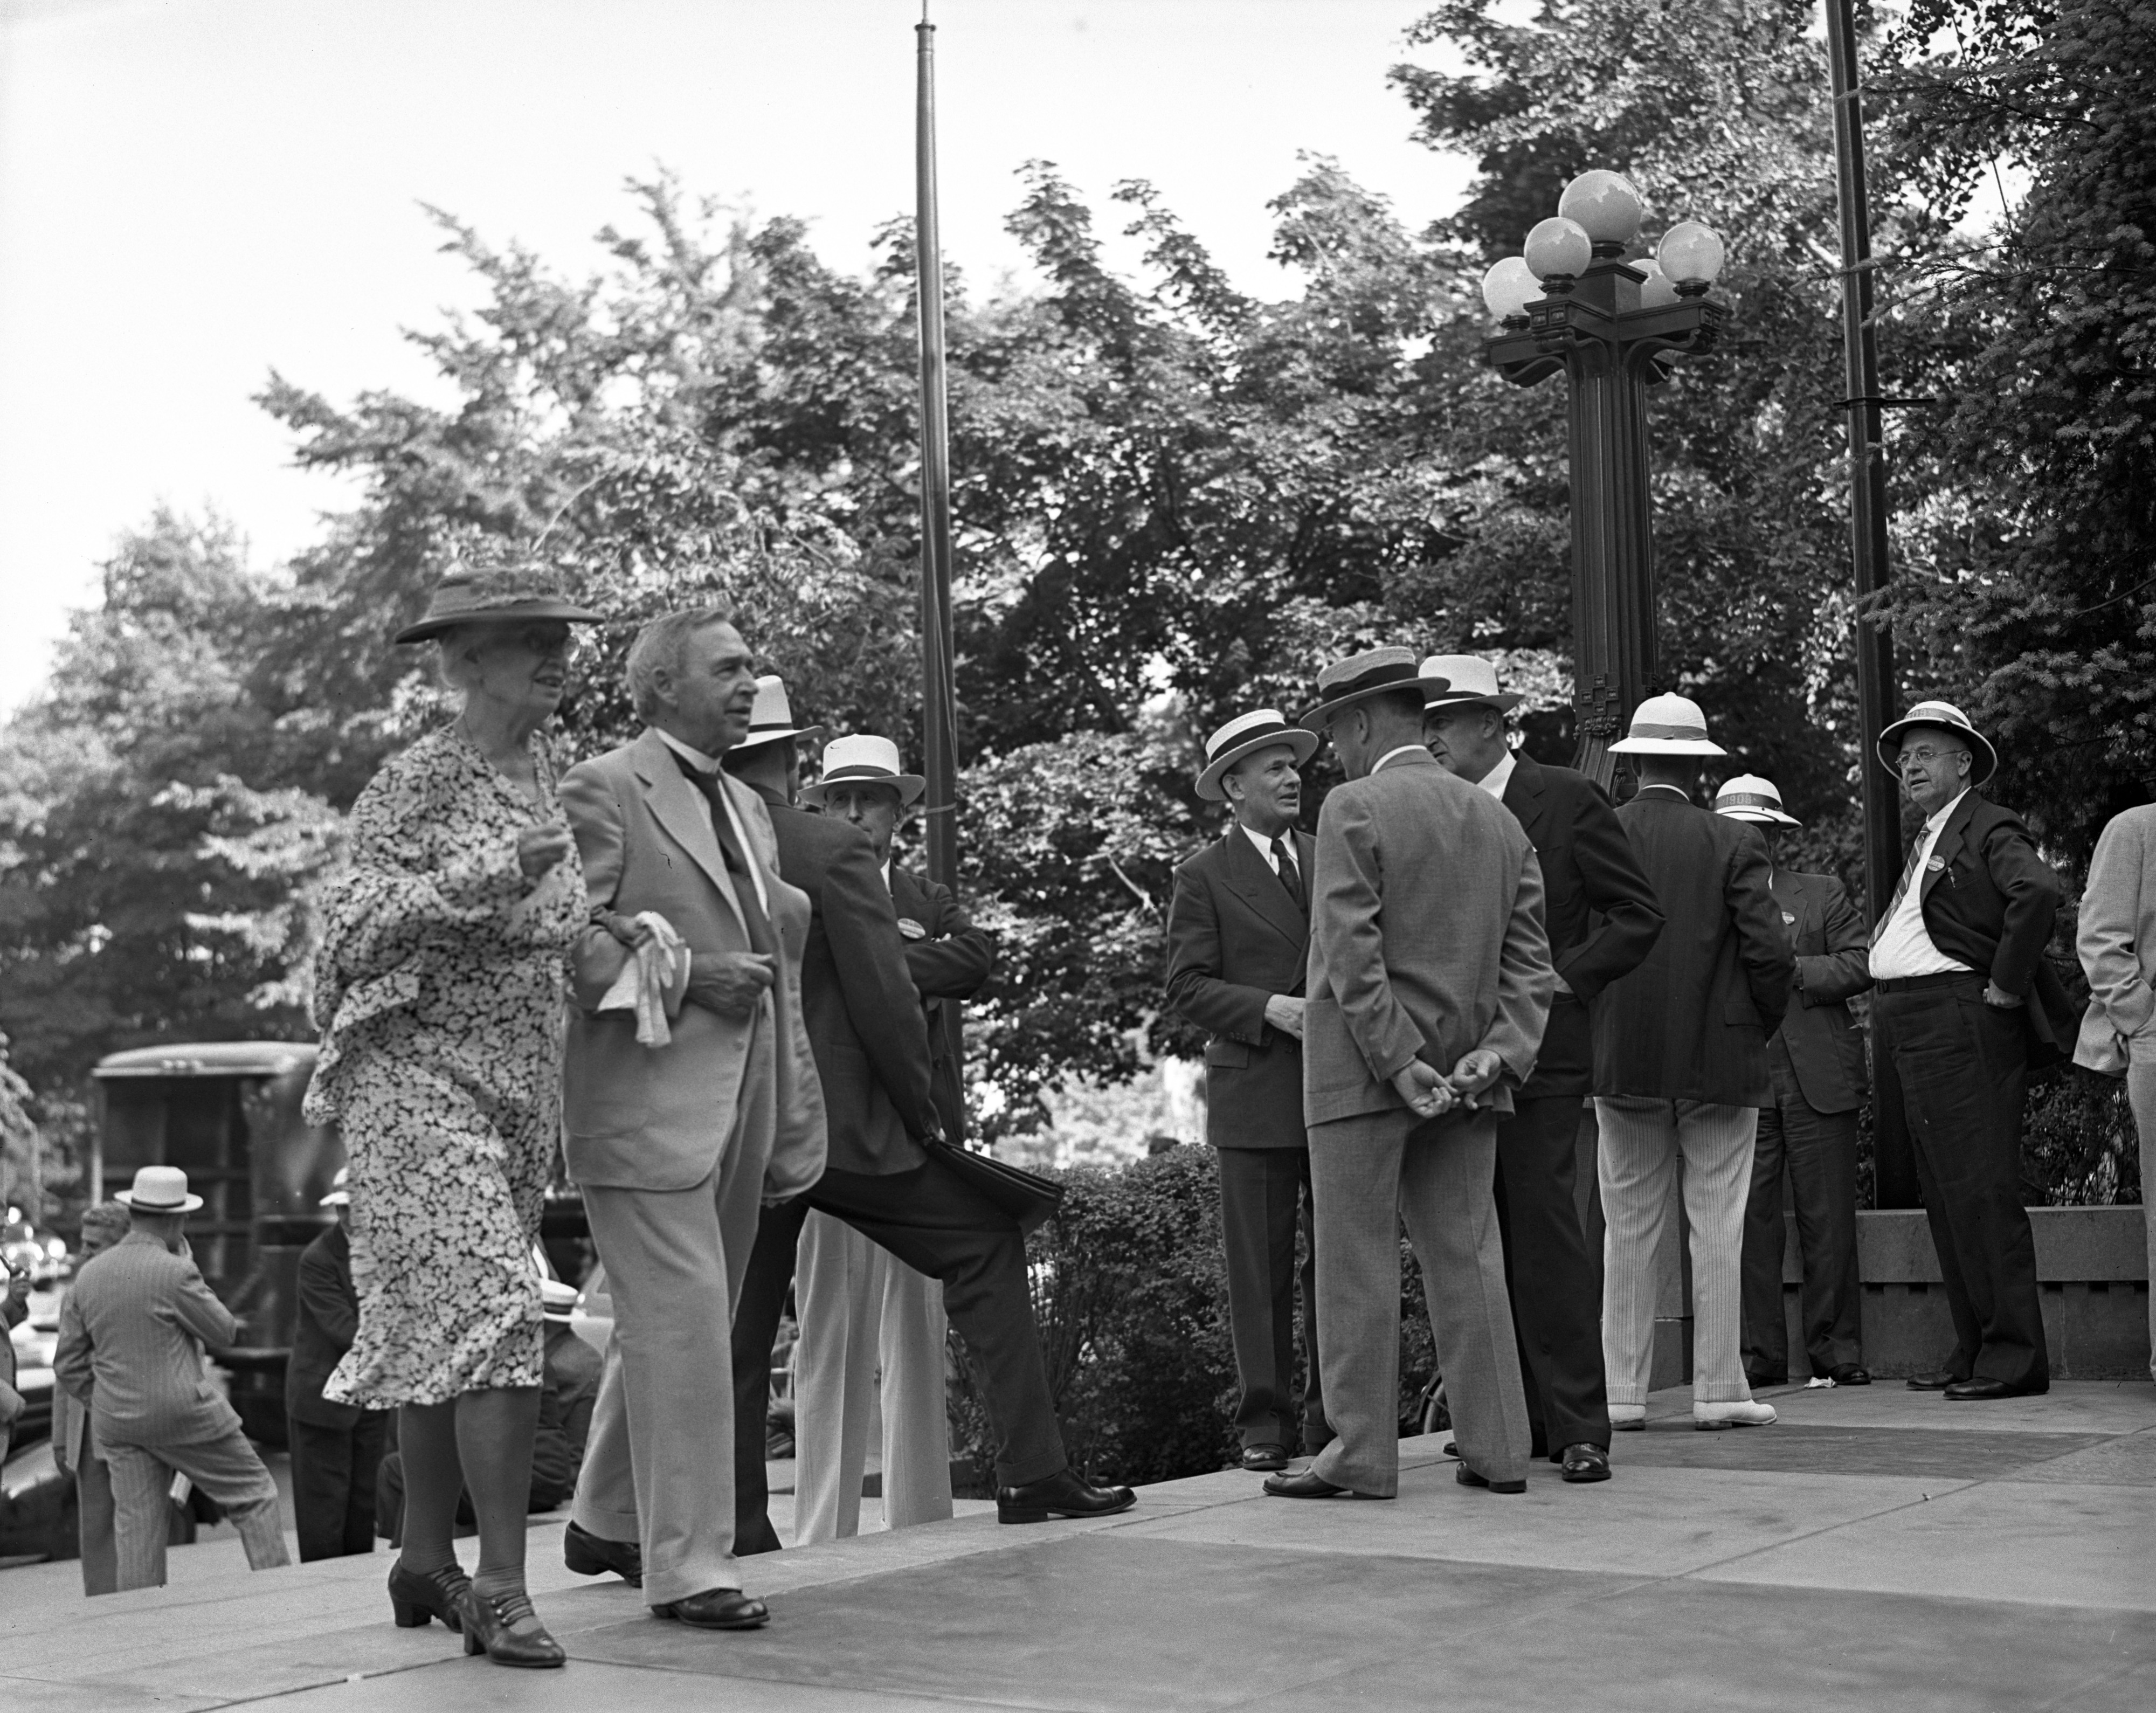 Old University of Michigan graduates on the steps of the Michigan Union, June 1939 image